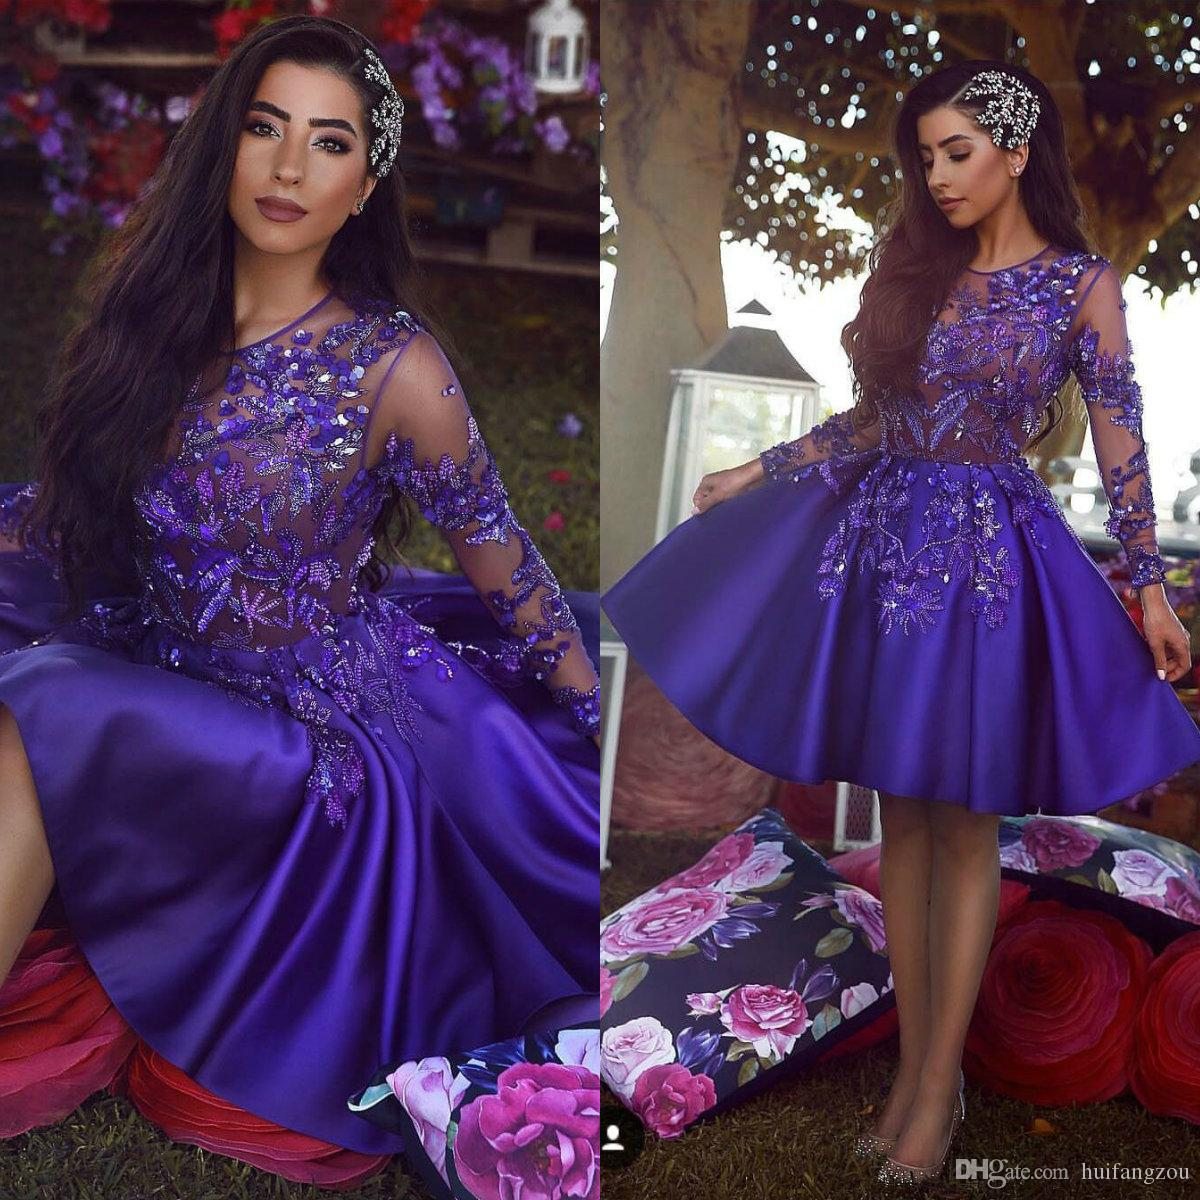 2019 Fashion Purple Short Prom Dress Sheer Long Sleeves Lace Applique  Sequins Beaded Cocktail Party Dresses Formal Evening Celebration Gowns Cheap  Red Prom ... b8b1241ffb83